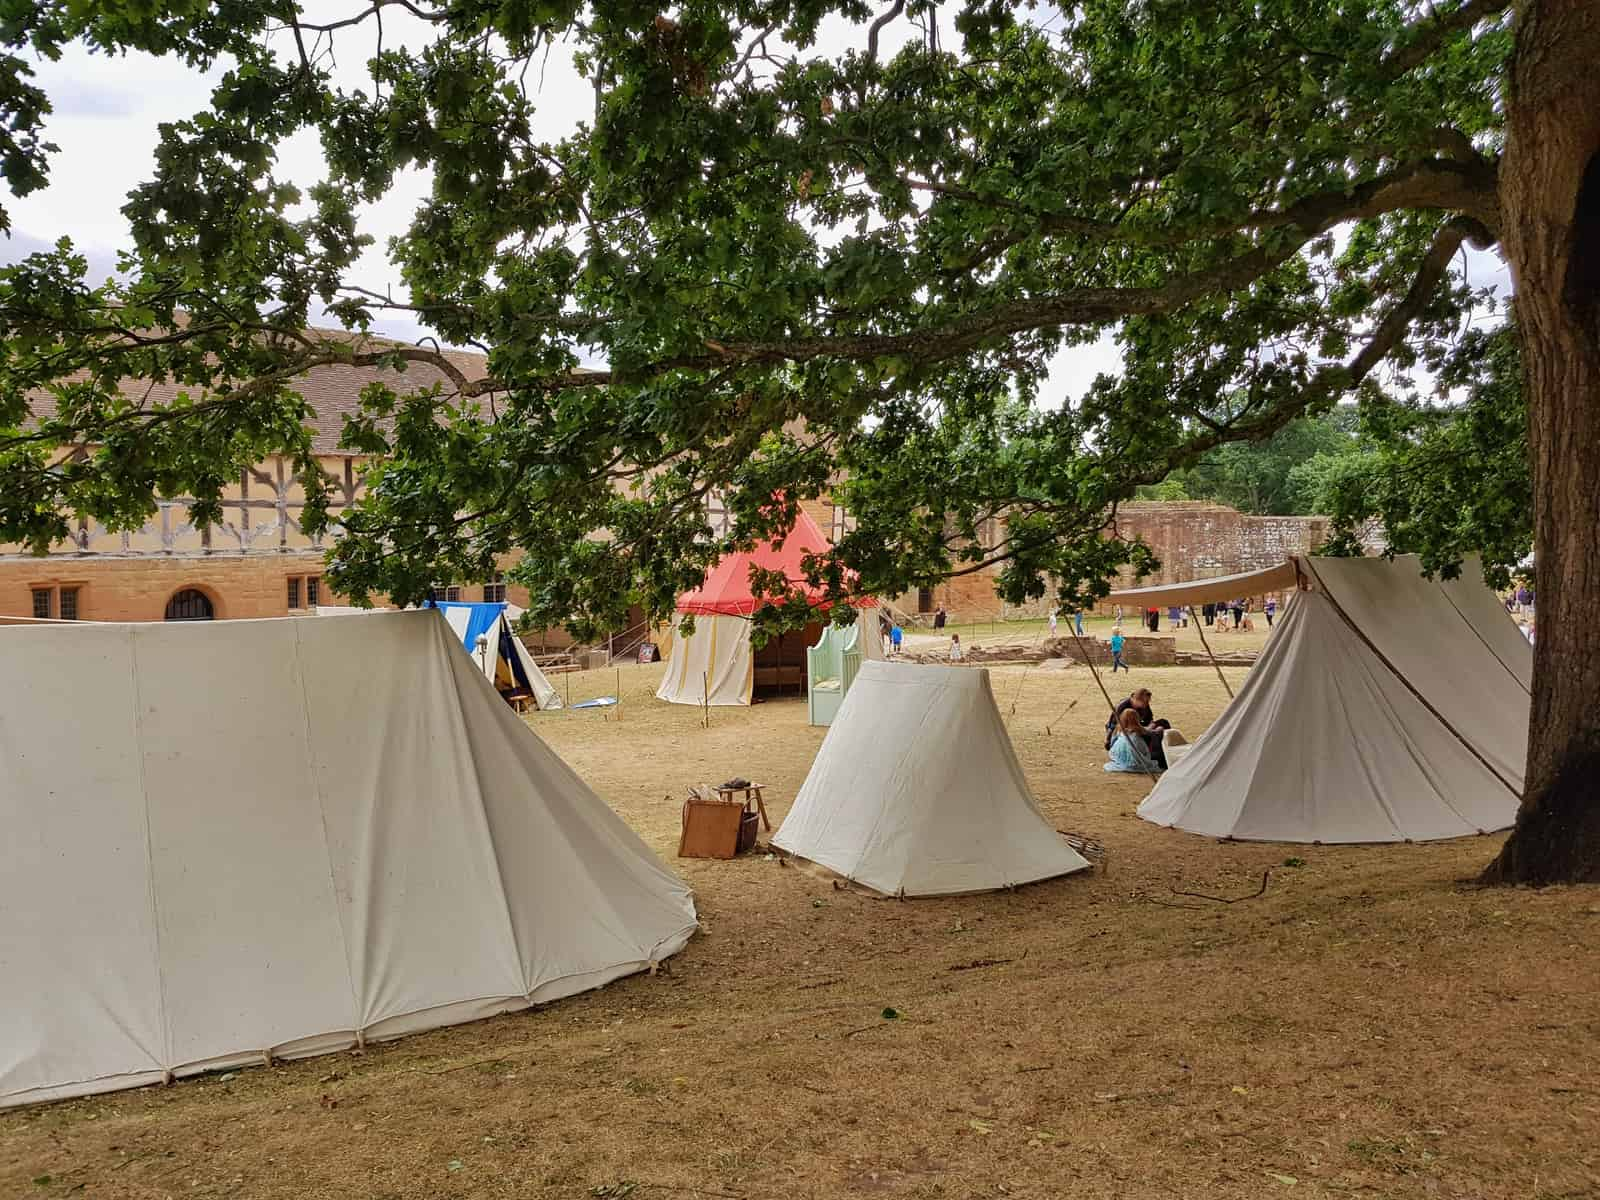 Kenilworth Castle Warwickshire Norman Castle show tents